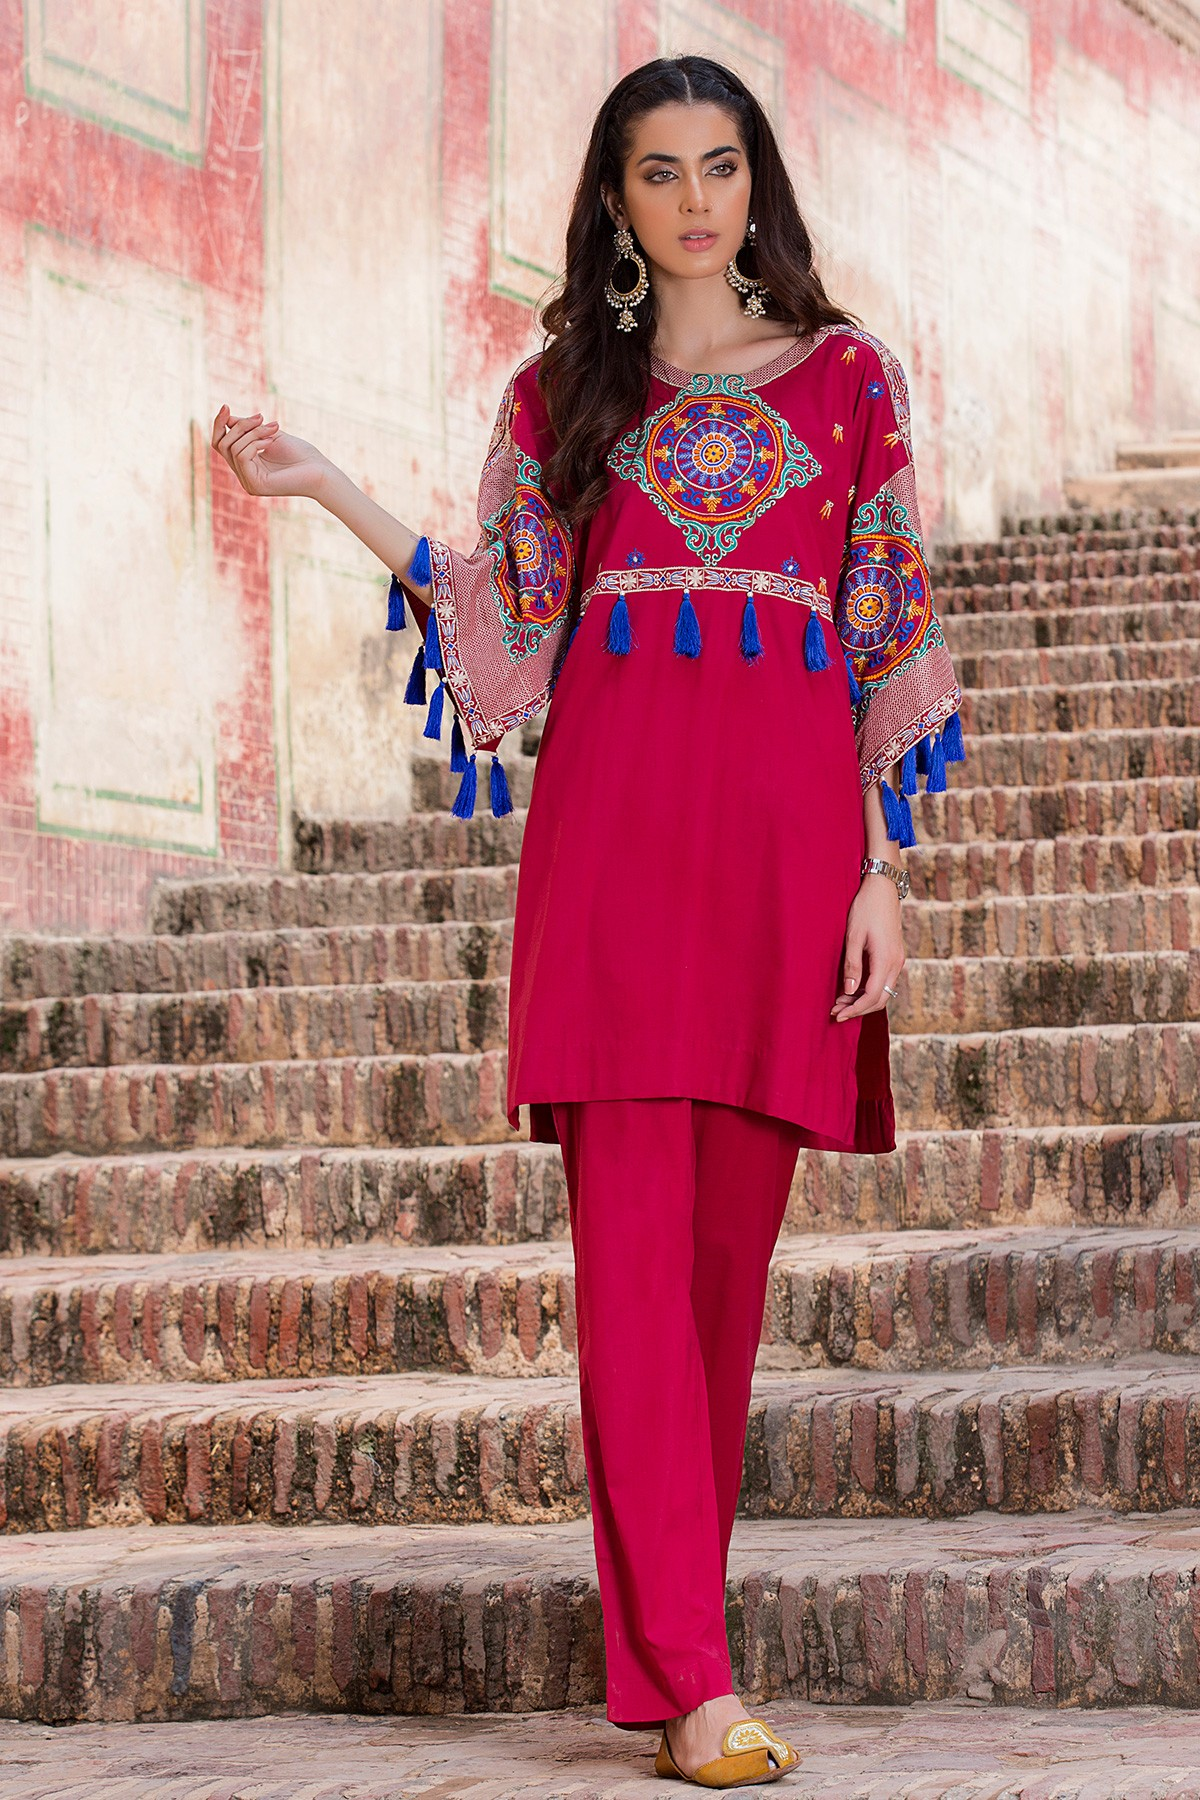 65210d28ea This ensemble is formed by a variety of designs like baggy style shirts,  tunics, kurtas, neckline designs, frock styled dress, pocket featuring  styles, ...